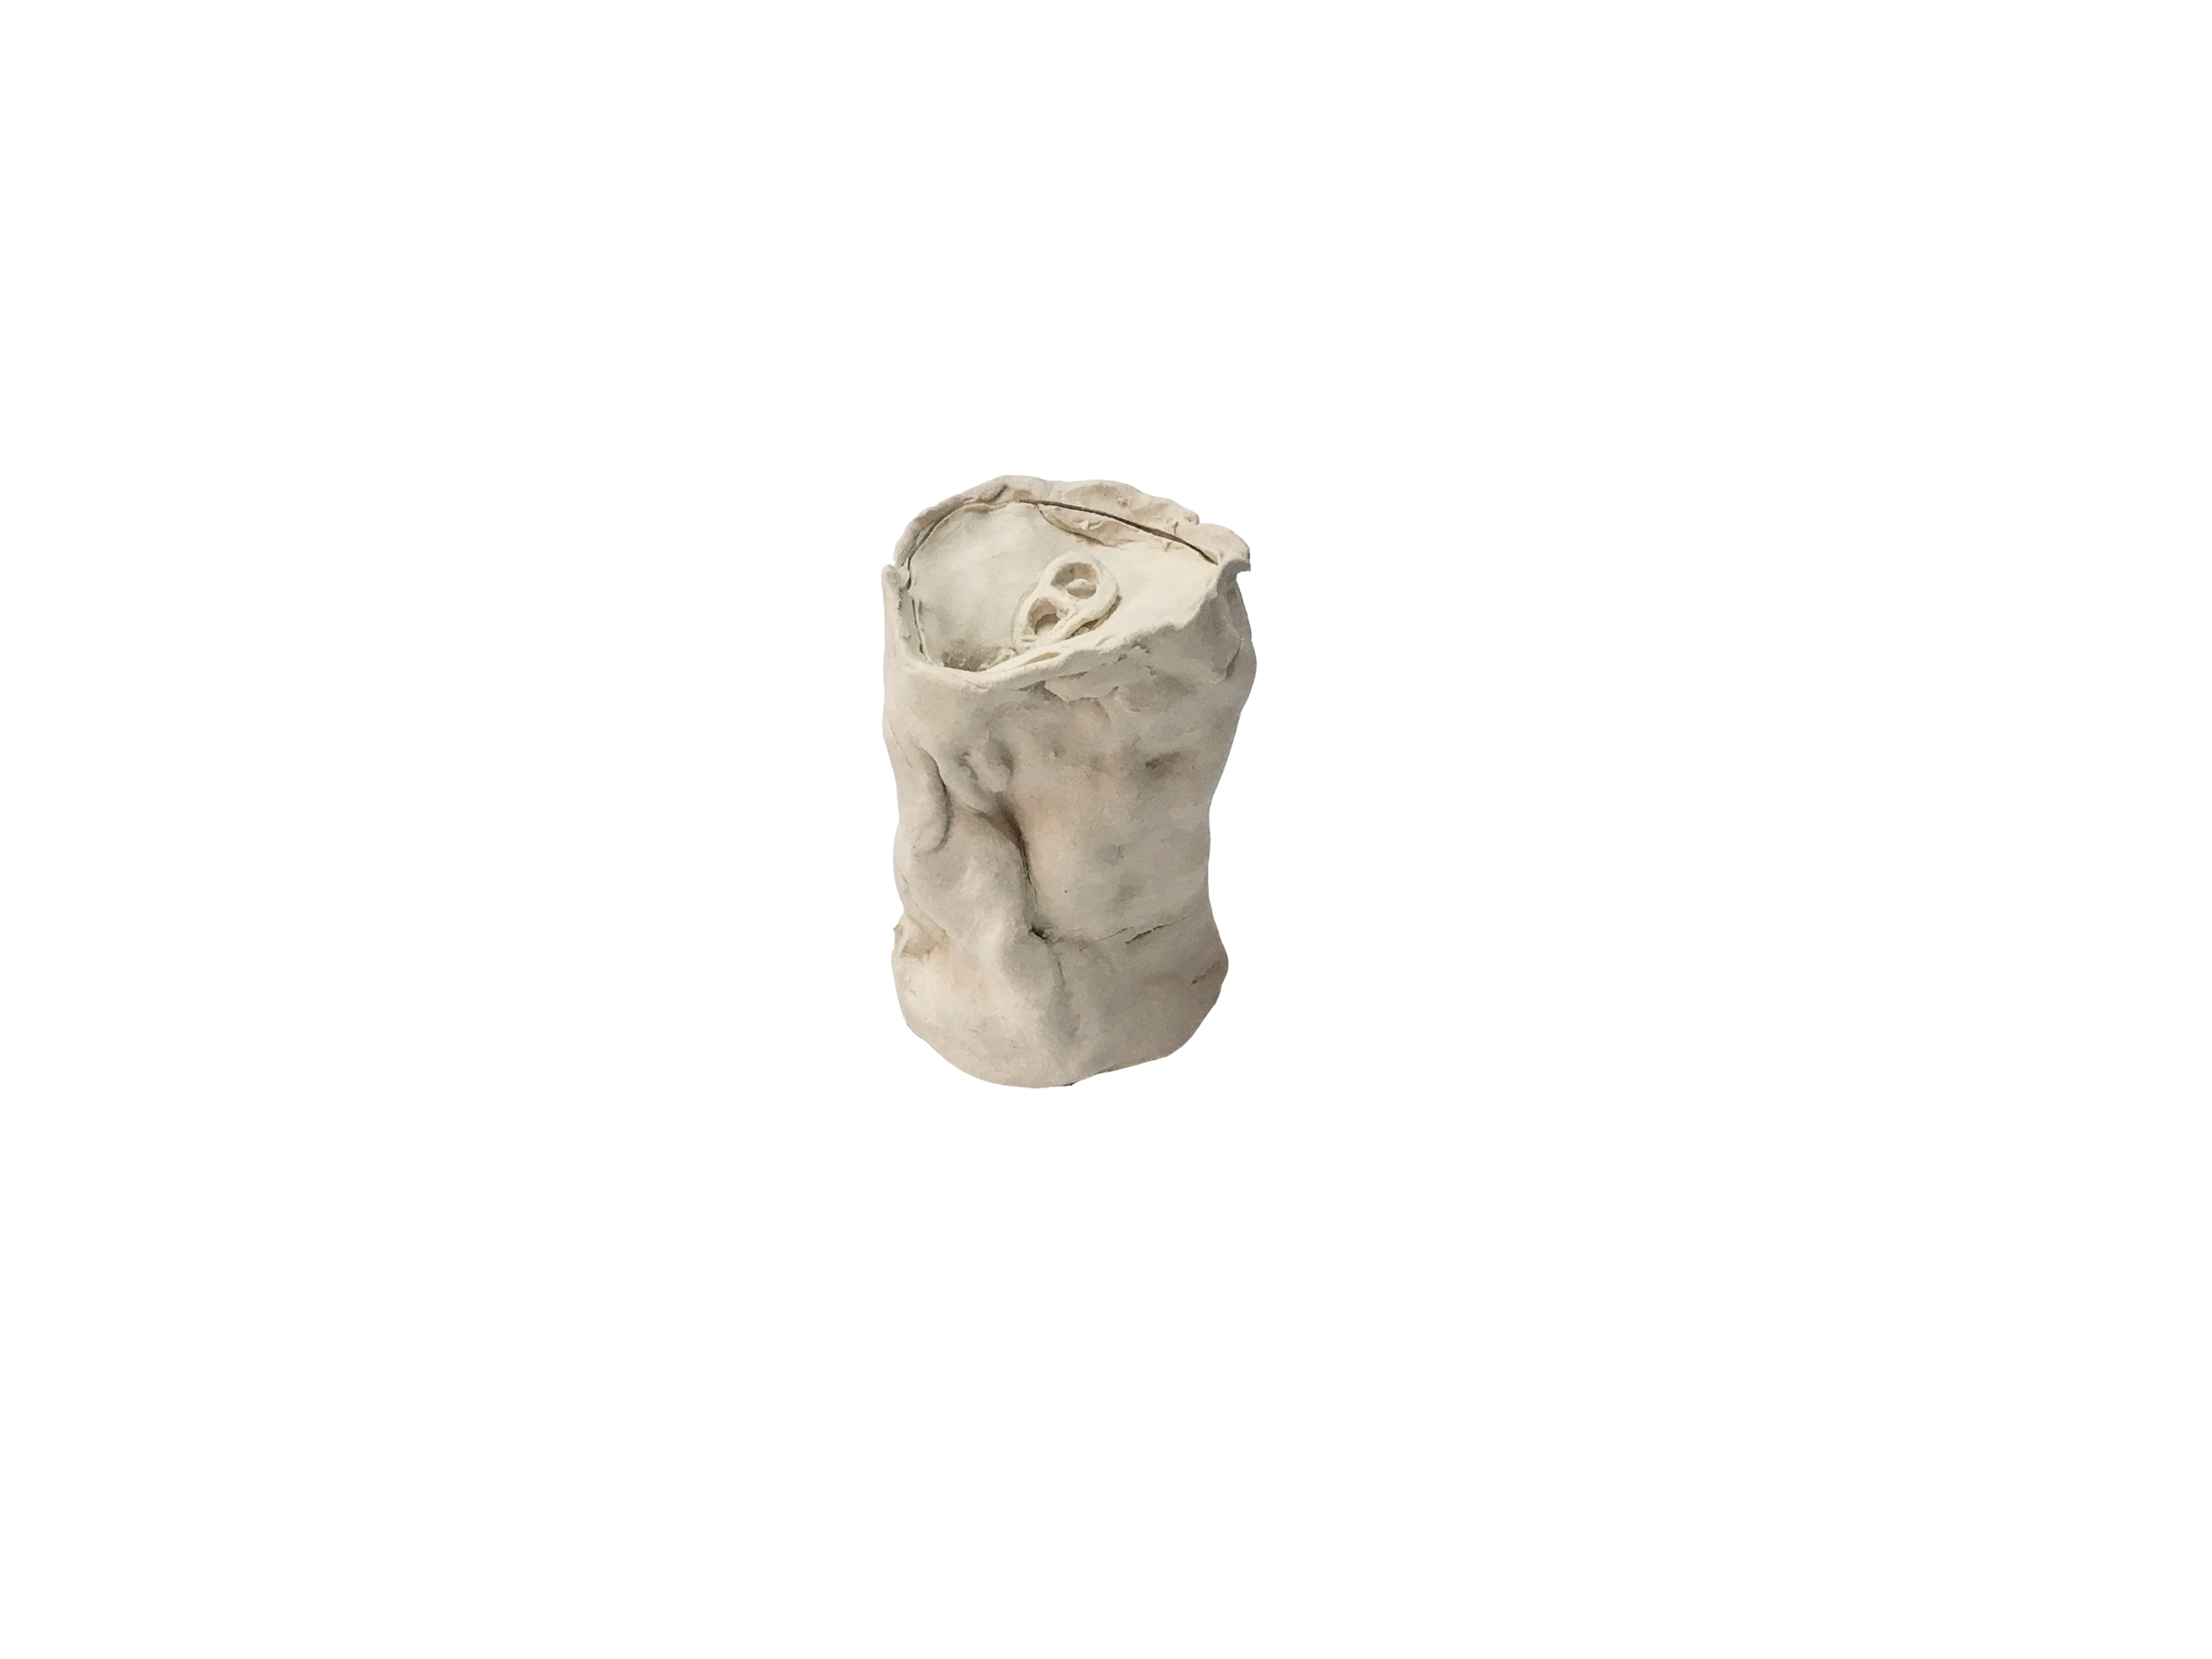 beer can_Marciano_12_12_18_yi.png